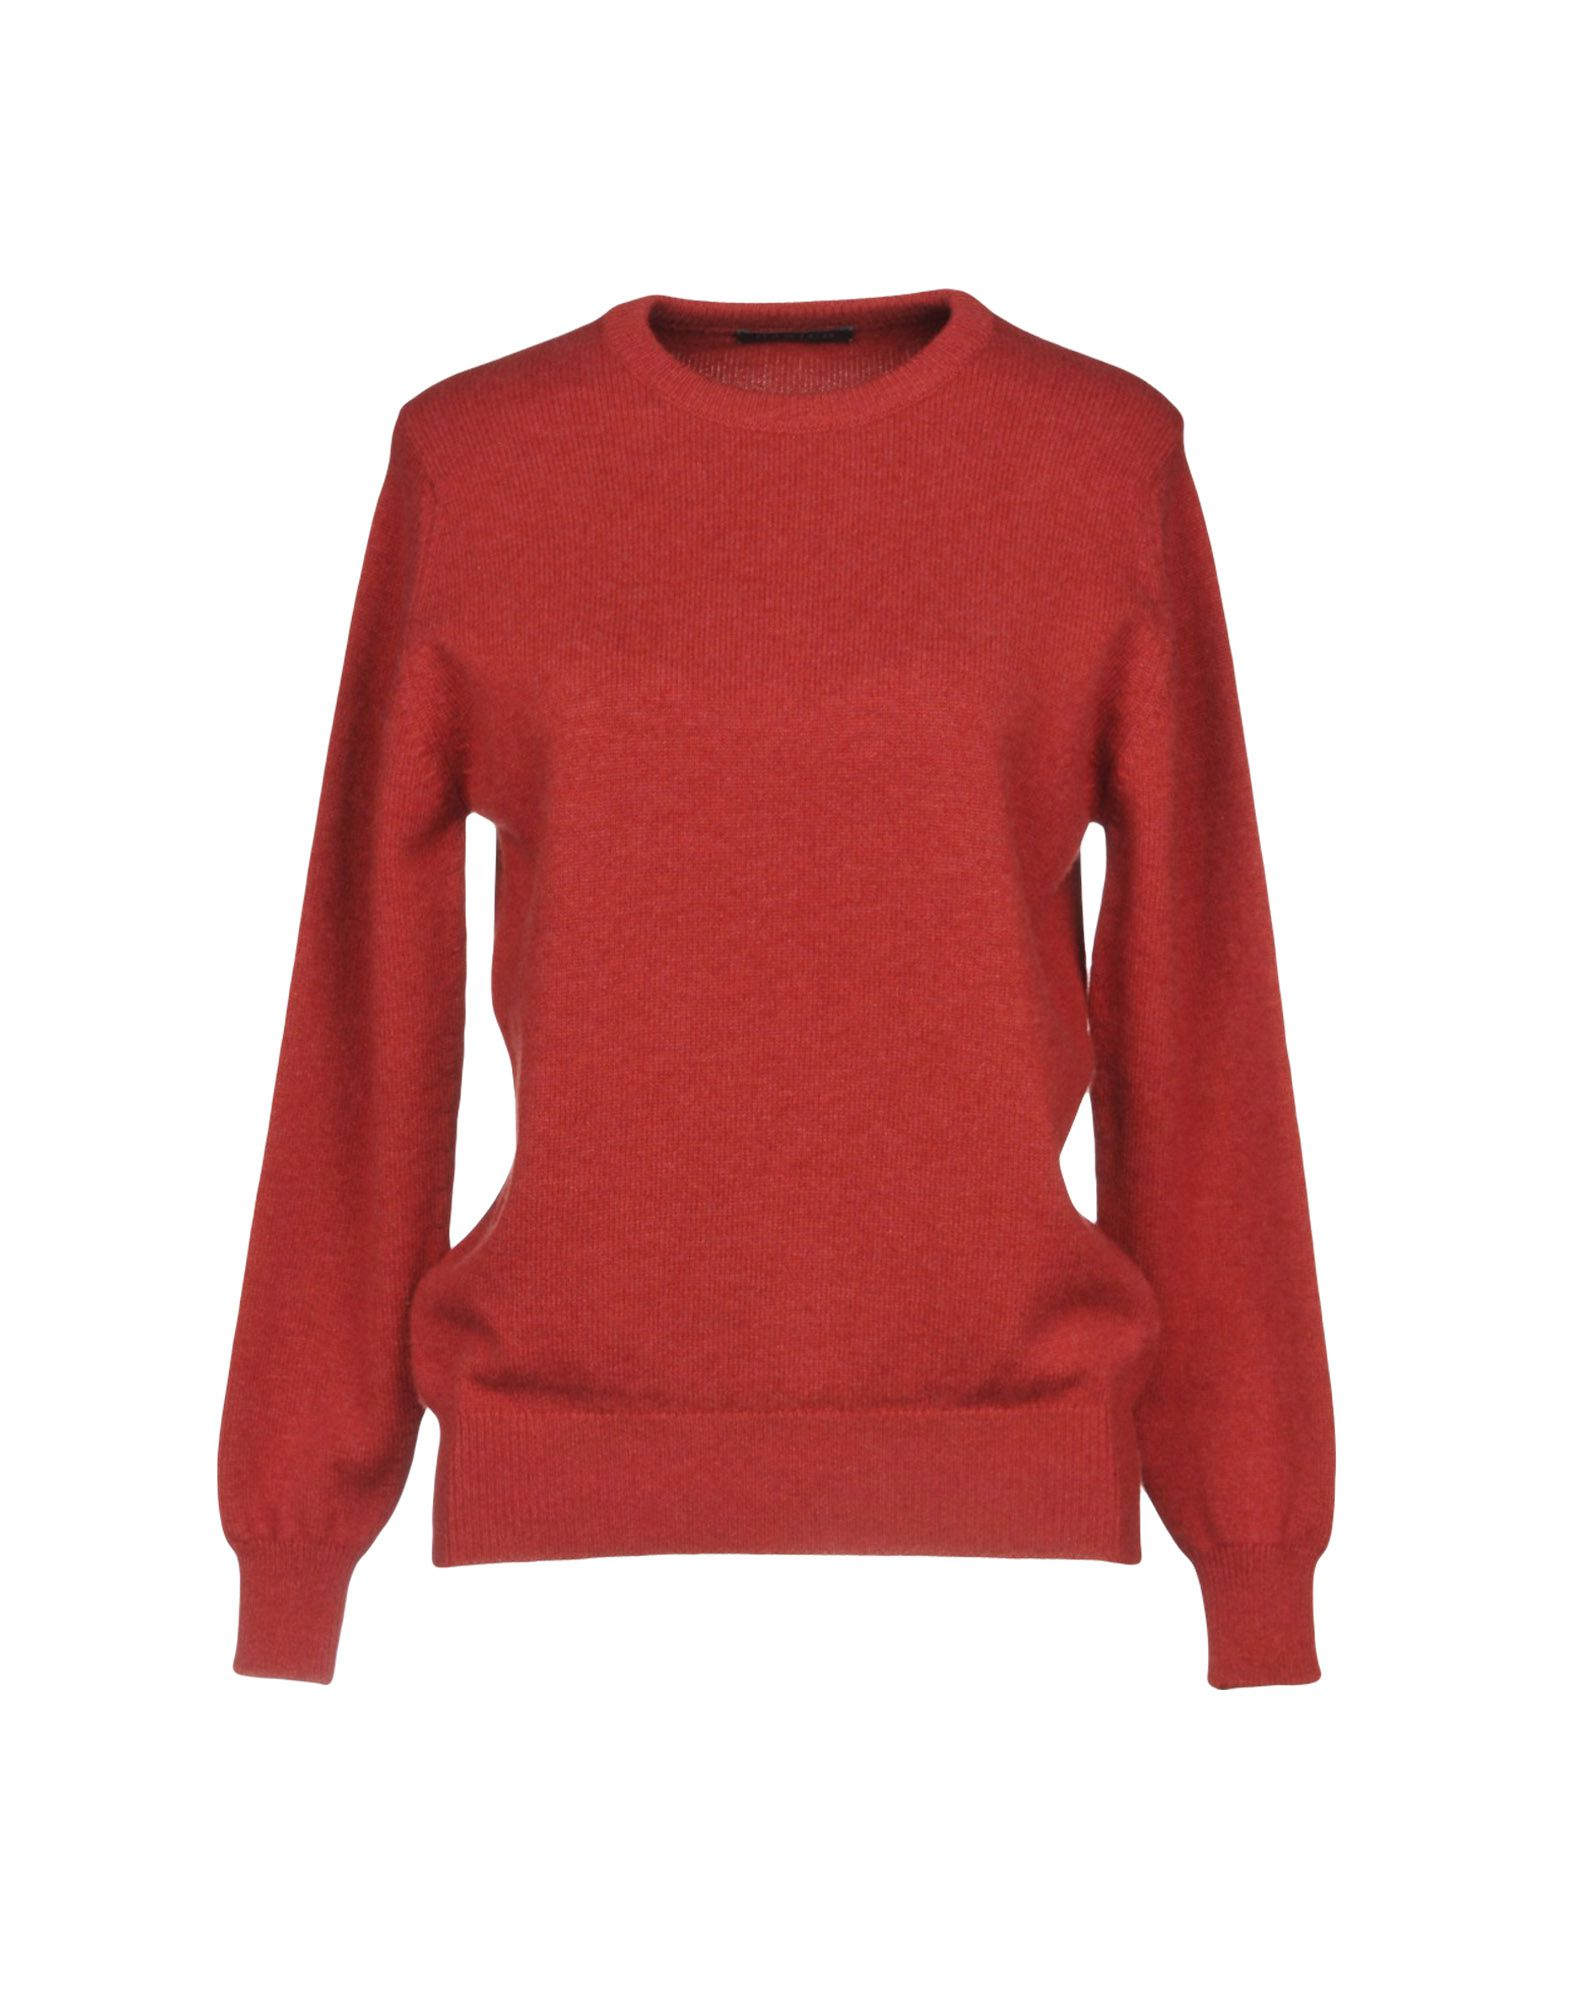 HAWICO Cashmere Blend in Maroon